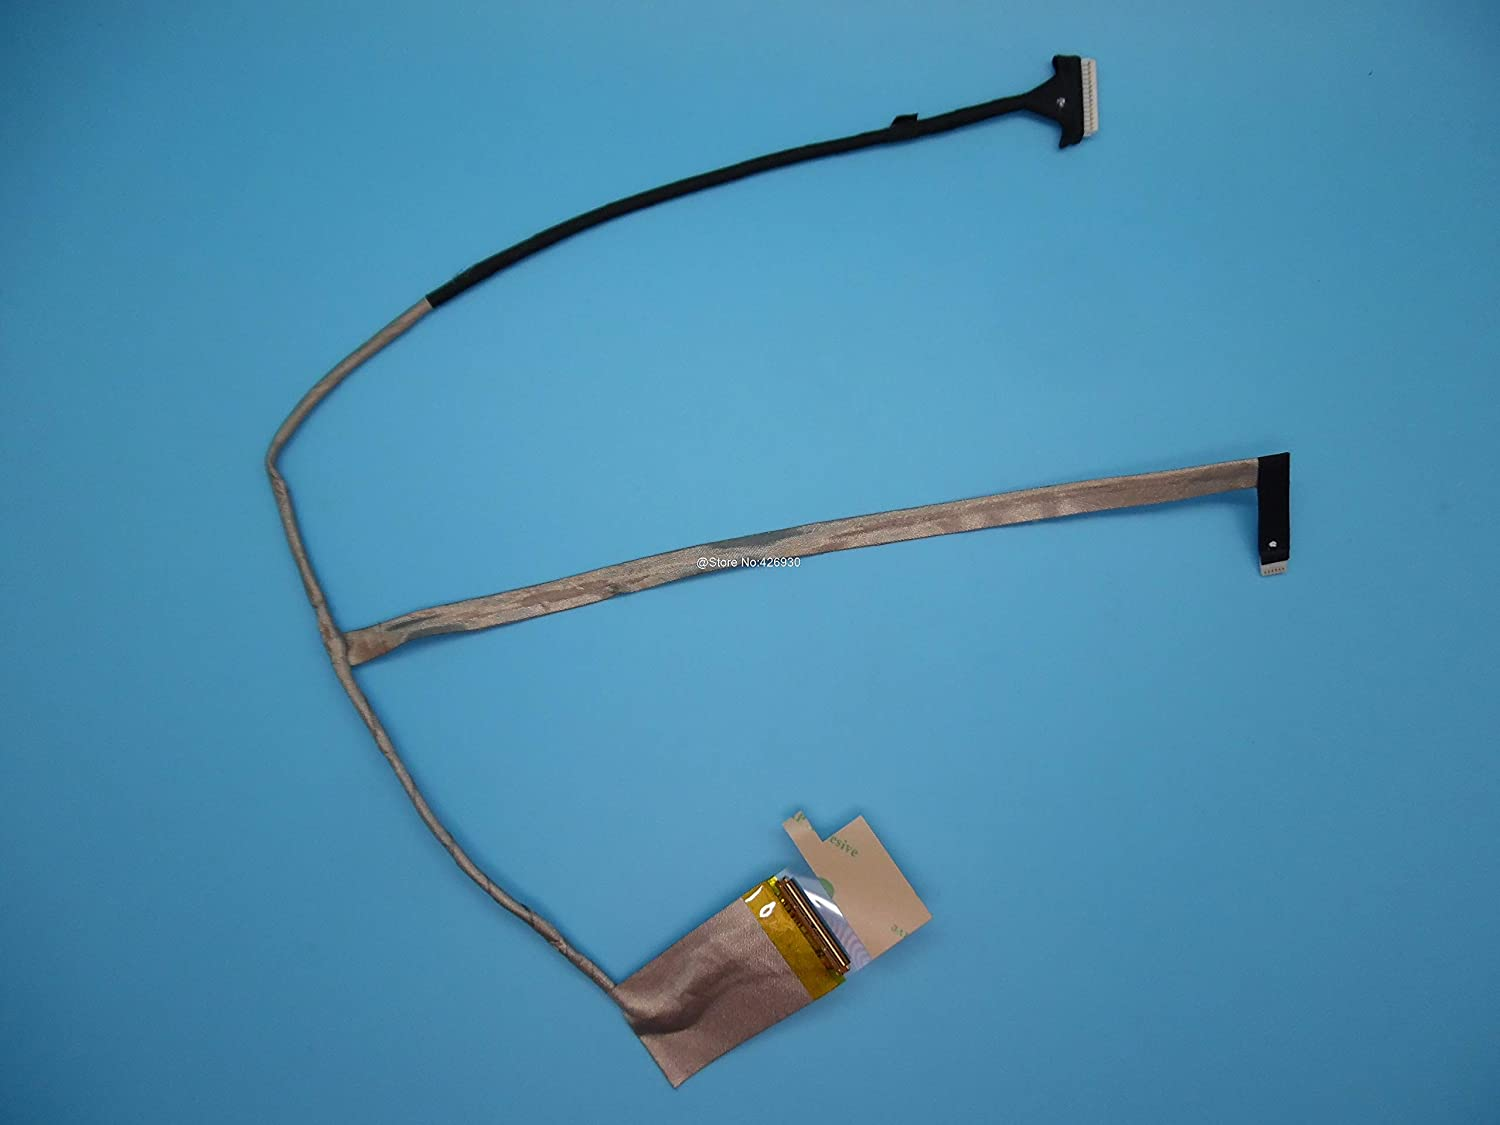 Cables Laptop LCD Cable for Samsung NP270E4V 270E4V BA39-01307A New - (Cable Length: 0.2m)